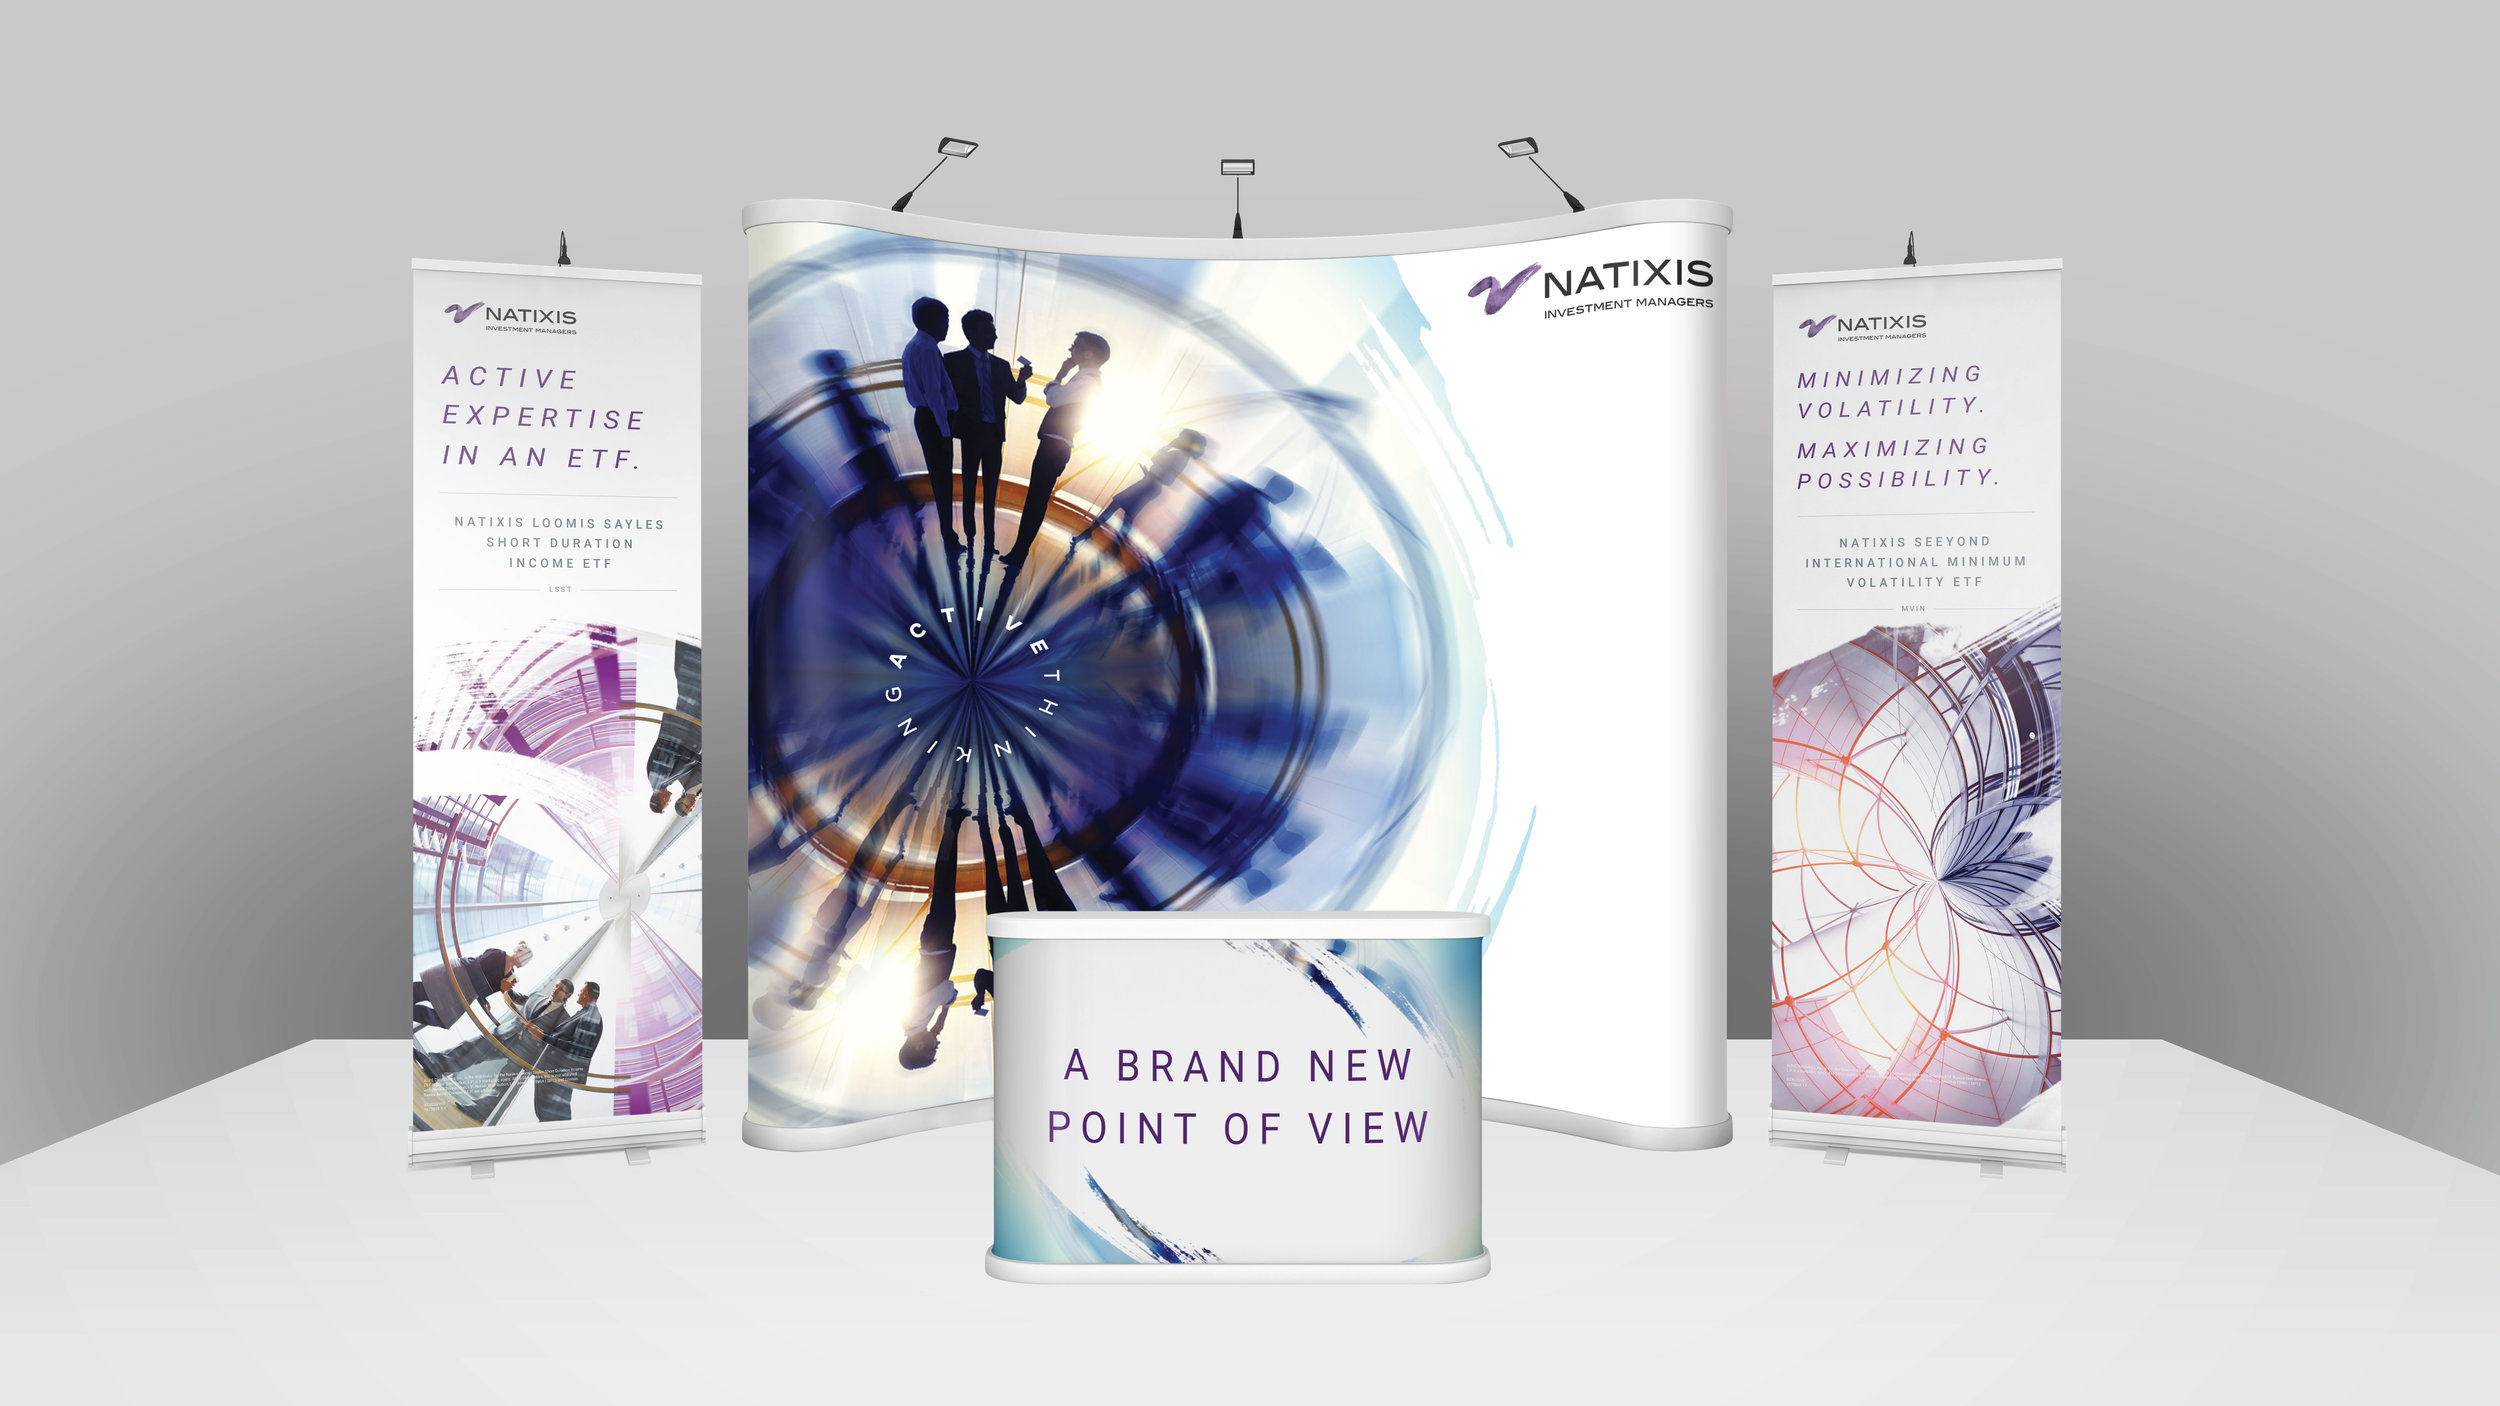 Natixis-ETF Event-Banners_R2 copy_Page_5.jpg